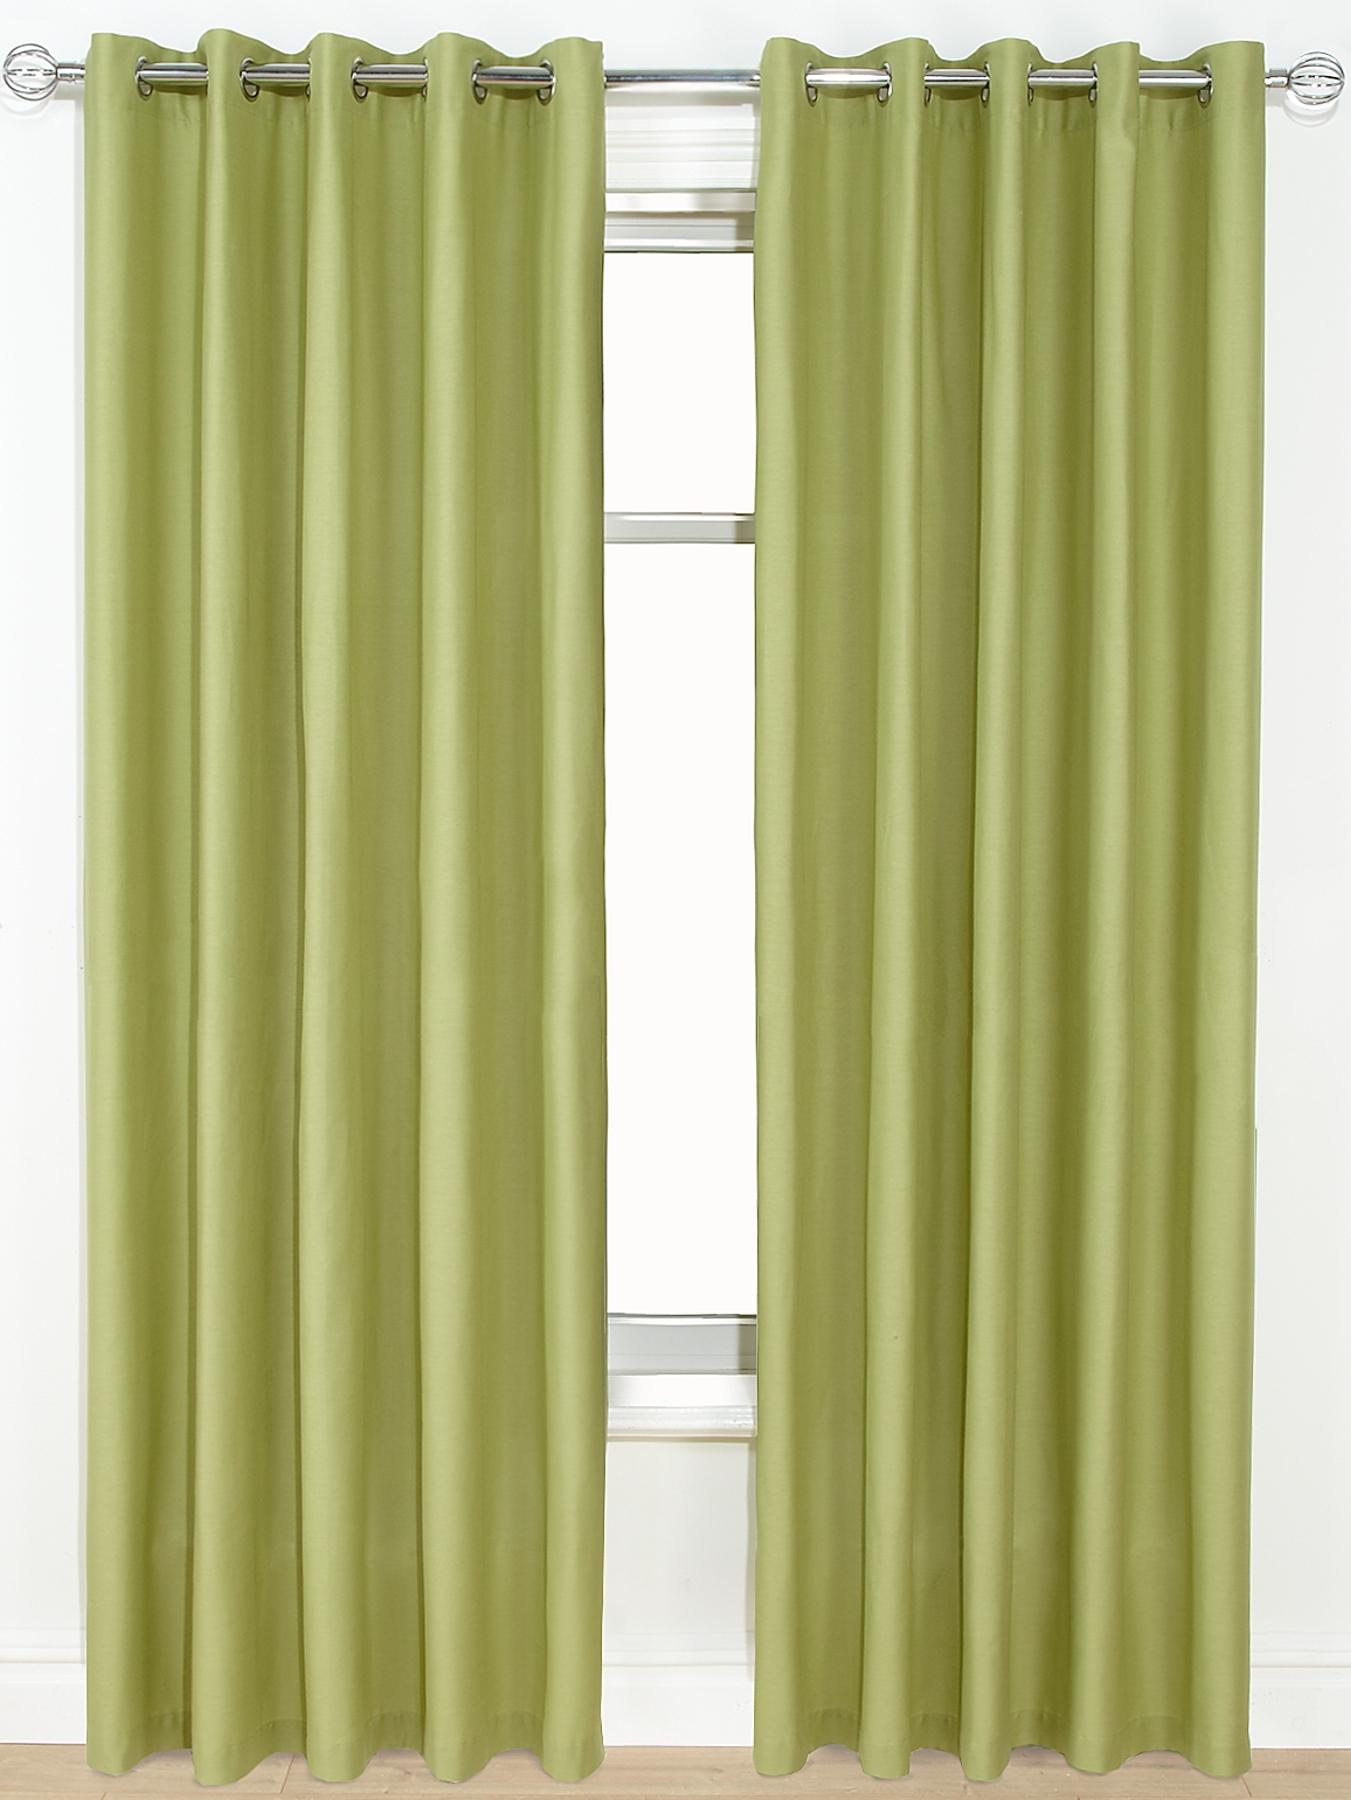 Canvas Lightweight Eyelet Unlined Curtains, Green,Grey,Chocolate,Taupe,Red,Black.